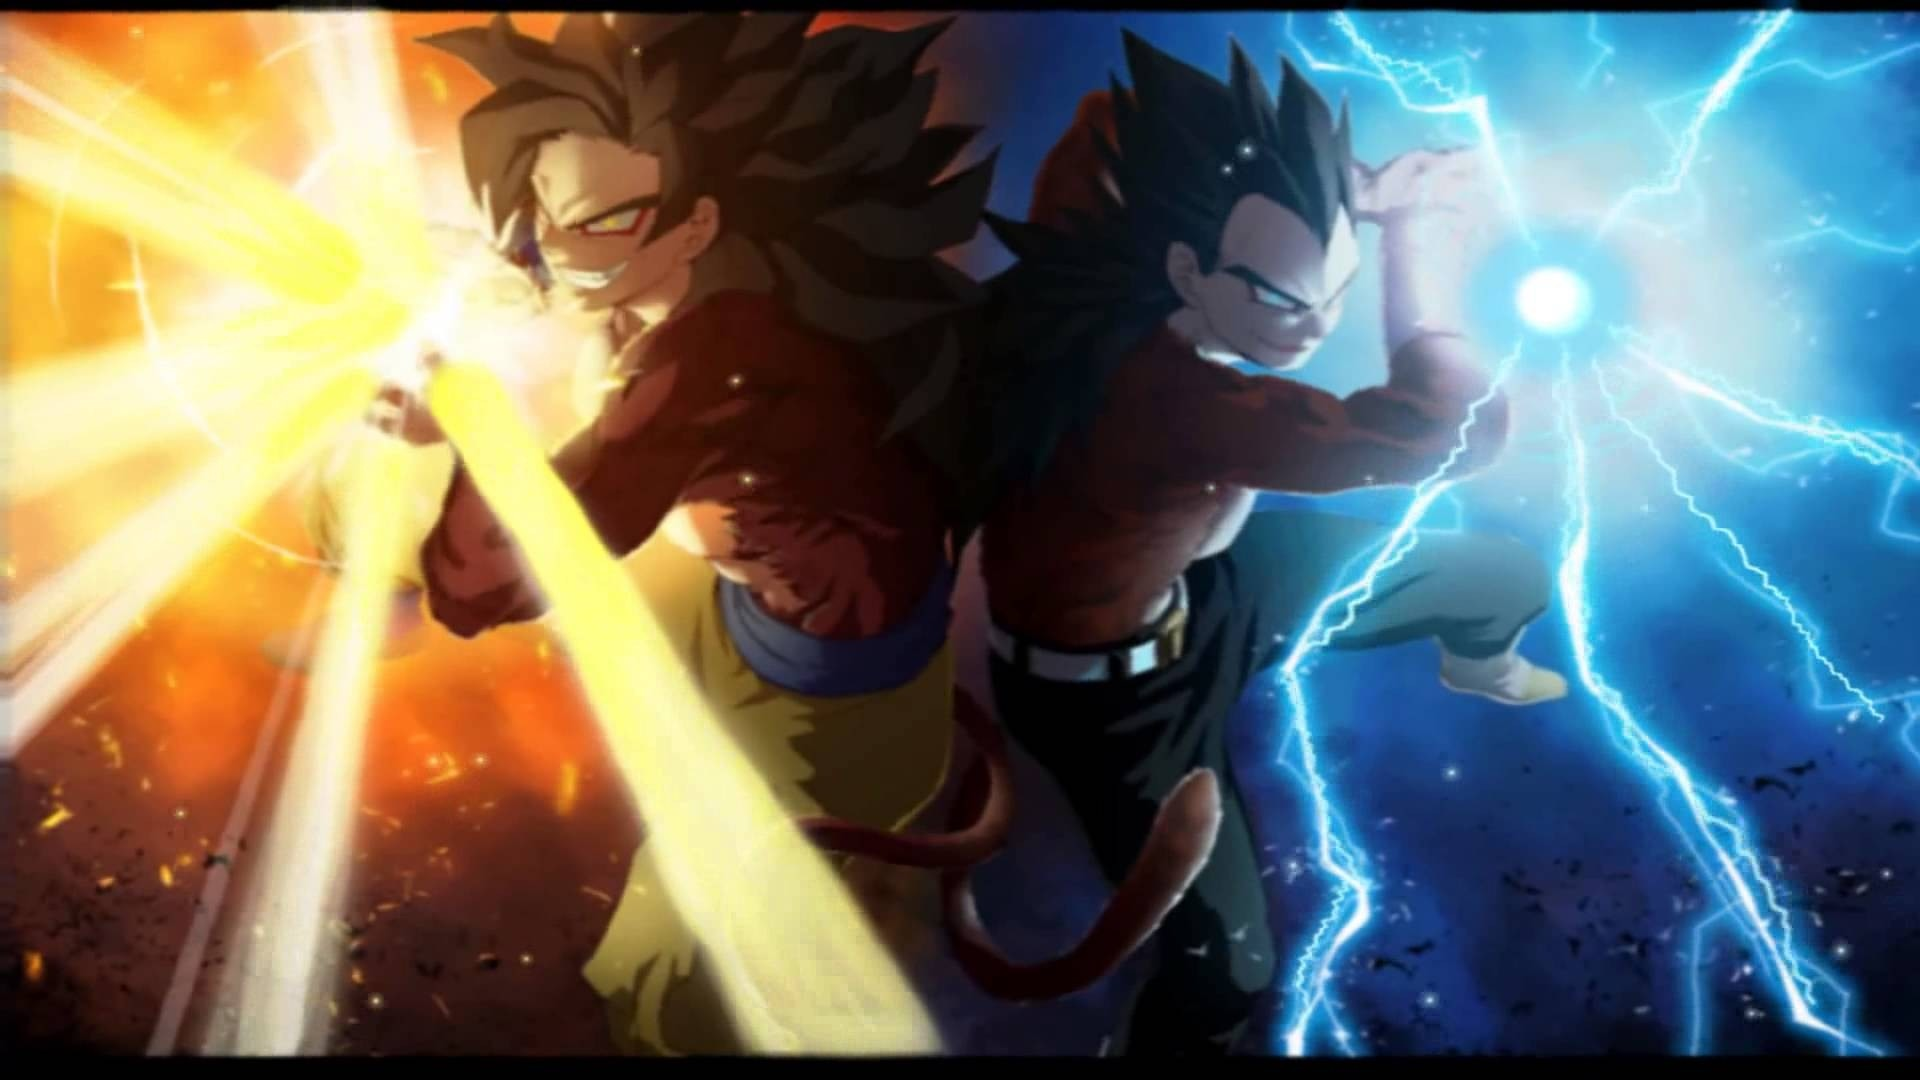 Dragon Ball Z Live Wallpapers 67 Images